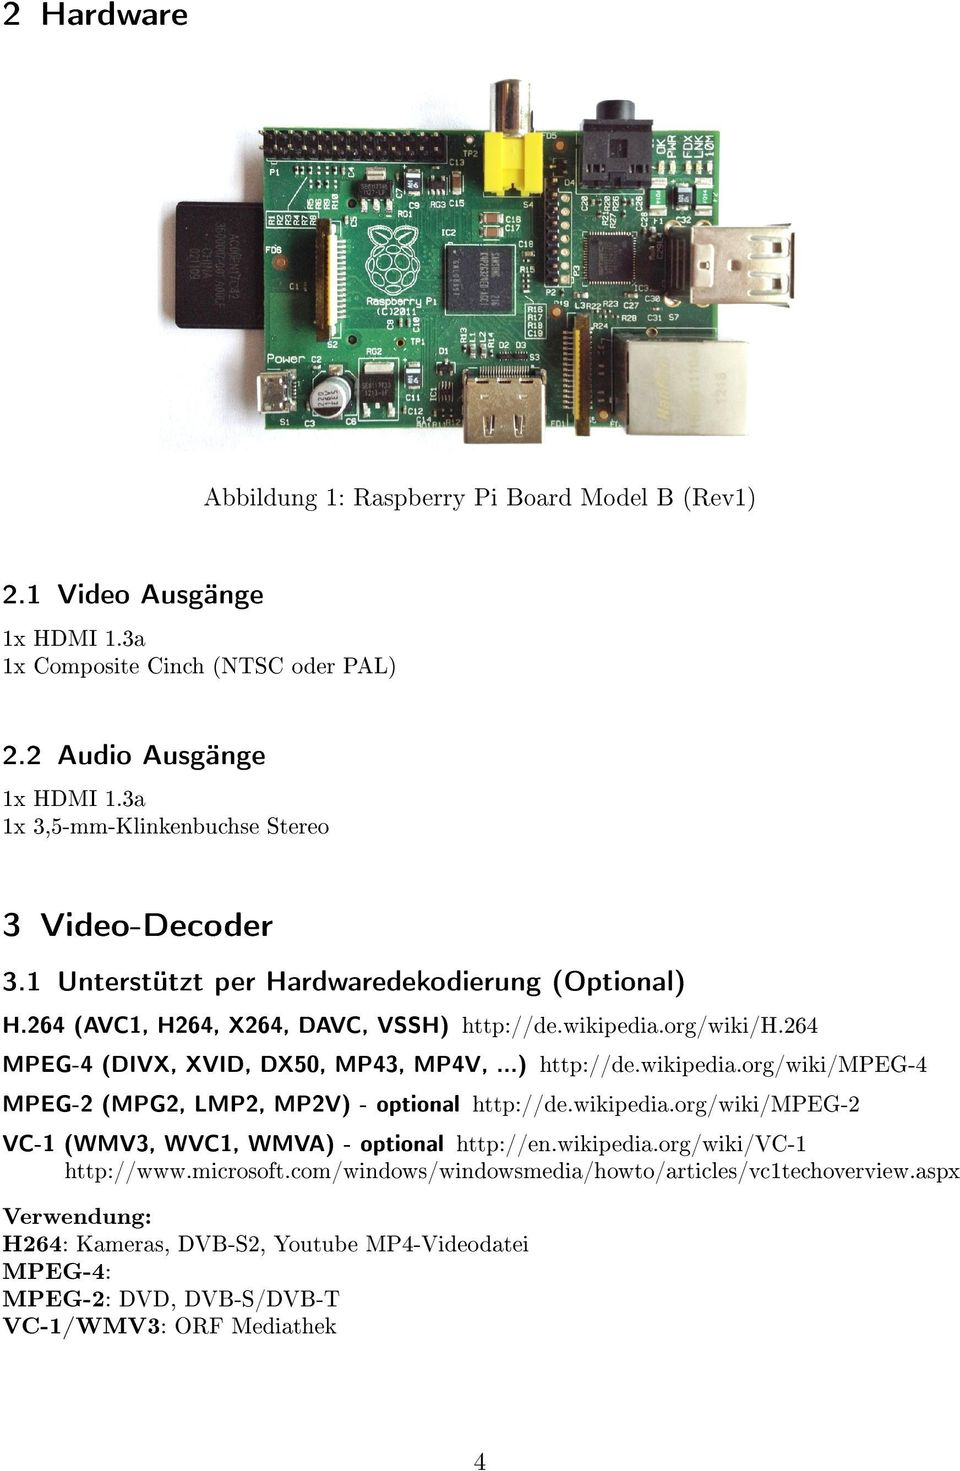 264 MPEG-4 (DIVX, XVID, DX50, MP43, MP4V,...) http://de.wikipedia.org/wiki/mpeg-4 MPEG-2 (MPG2, LMP2, MP2V) - optional http://de.wikipedia.org/wiki/mpeg-2 VC-1 (WMV3, WVC1, WMVA) - optional http://en.